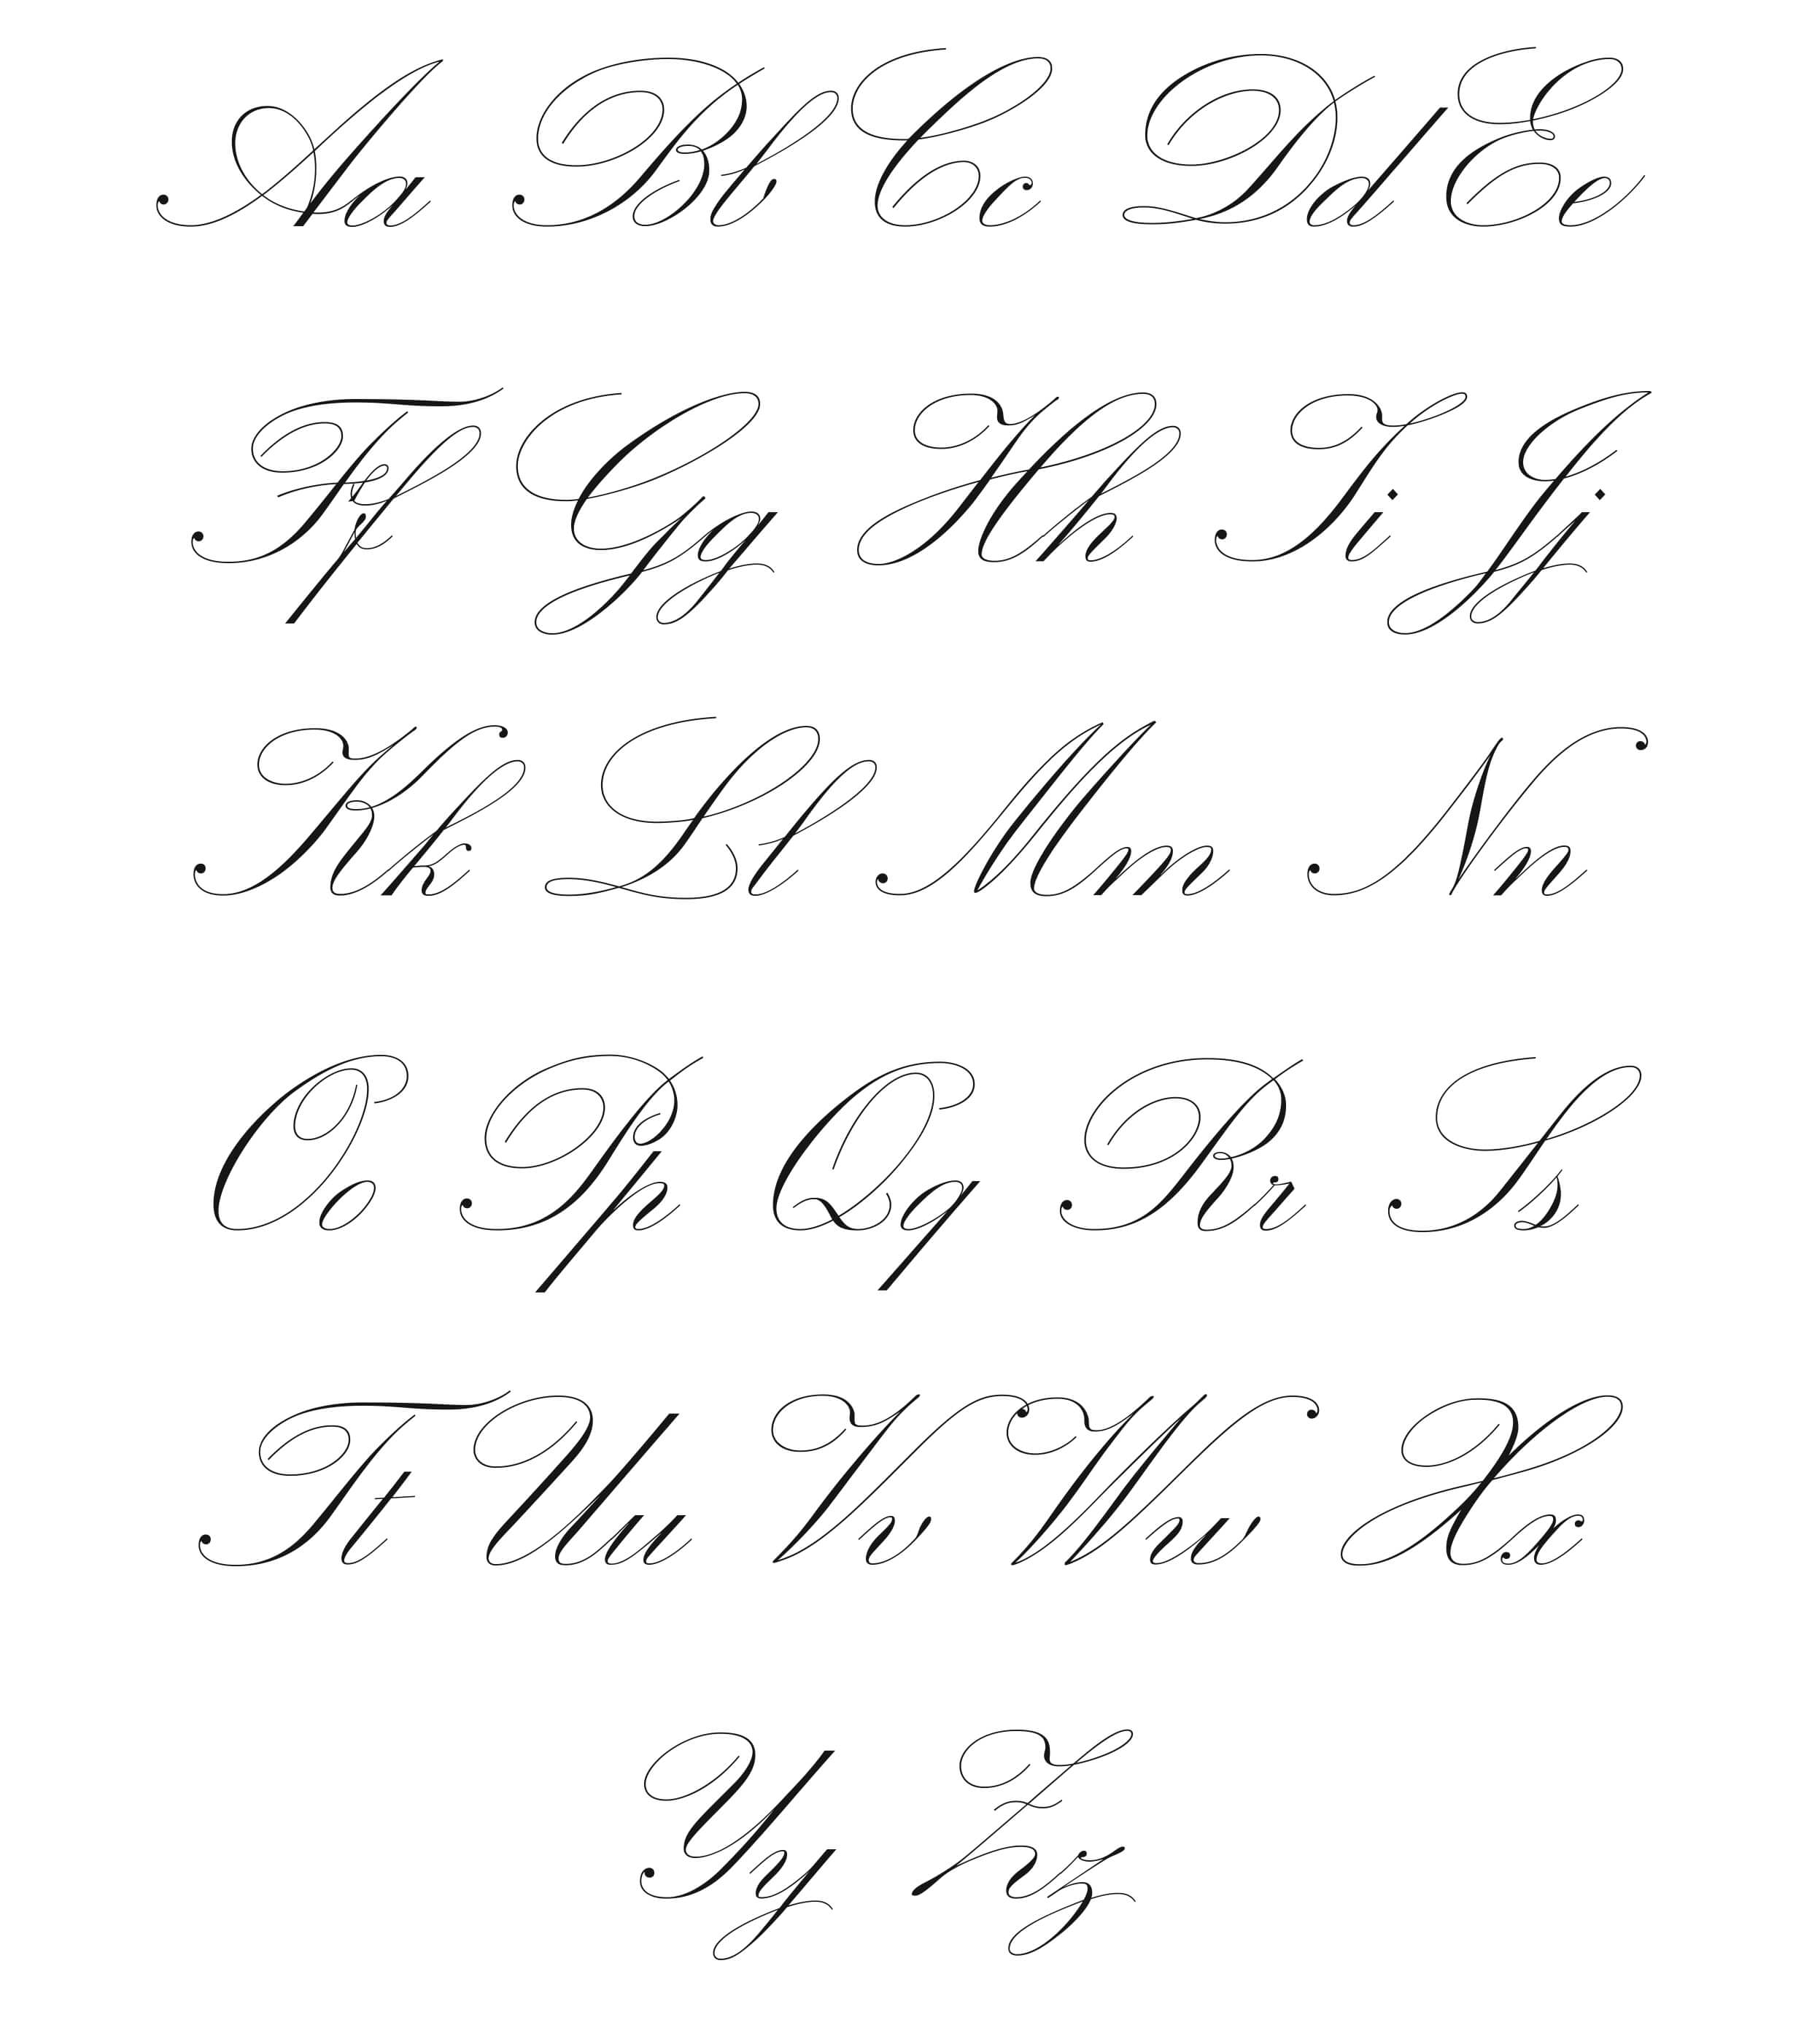 Mr. P's 'Spencerian' digital Calligraphy Script Sampler